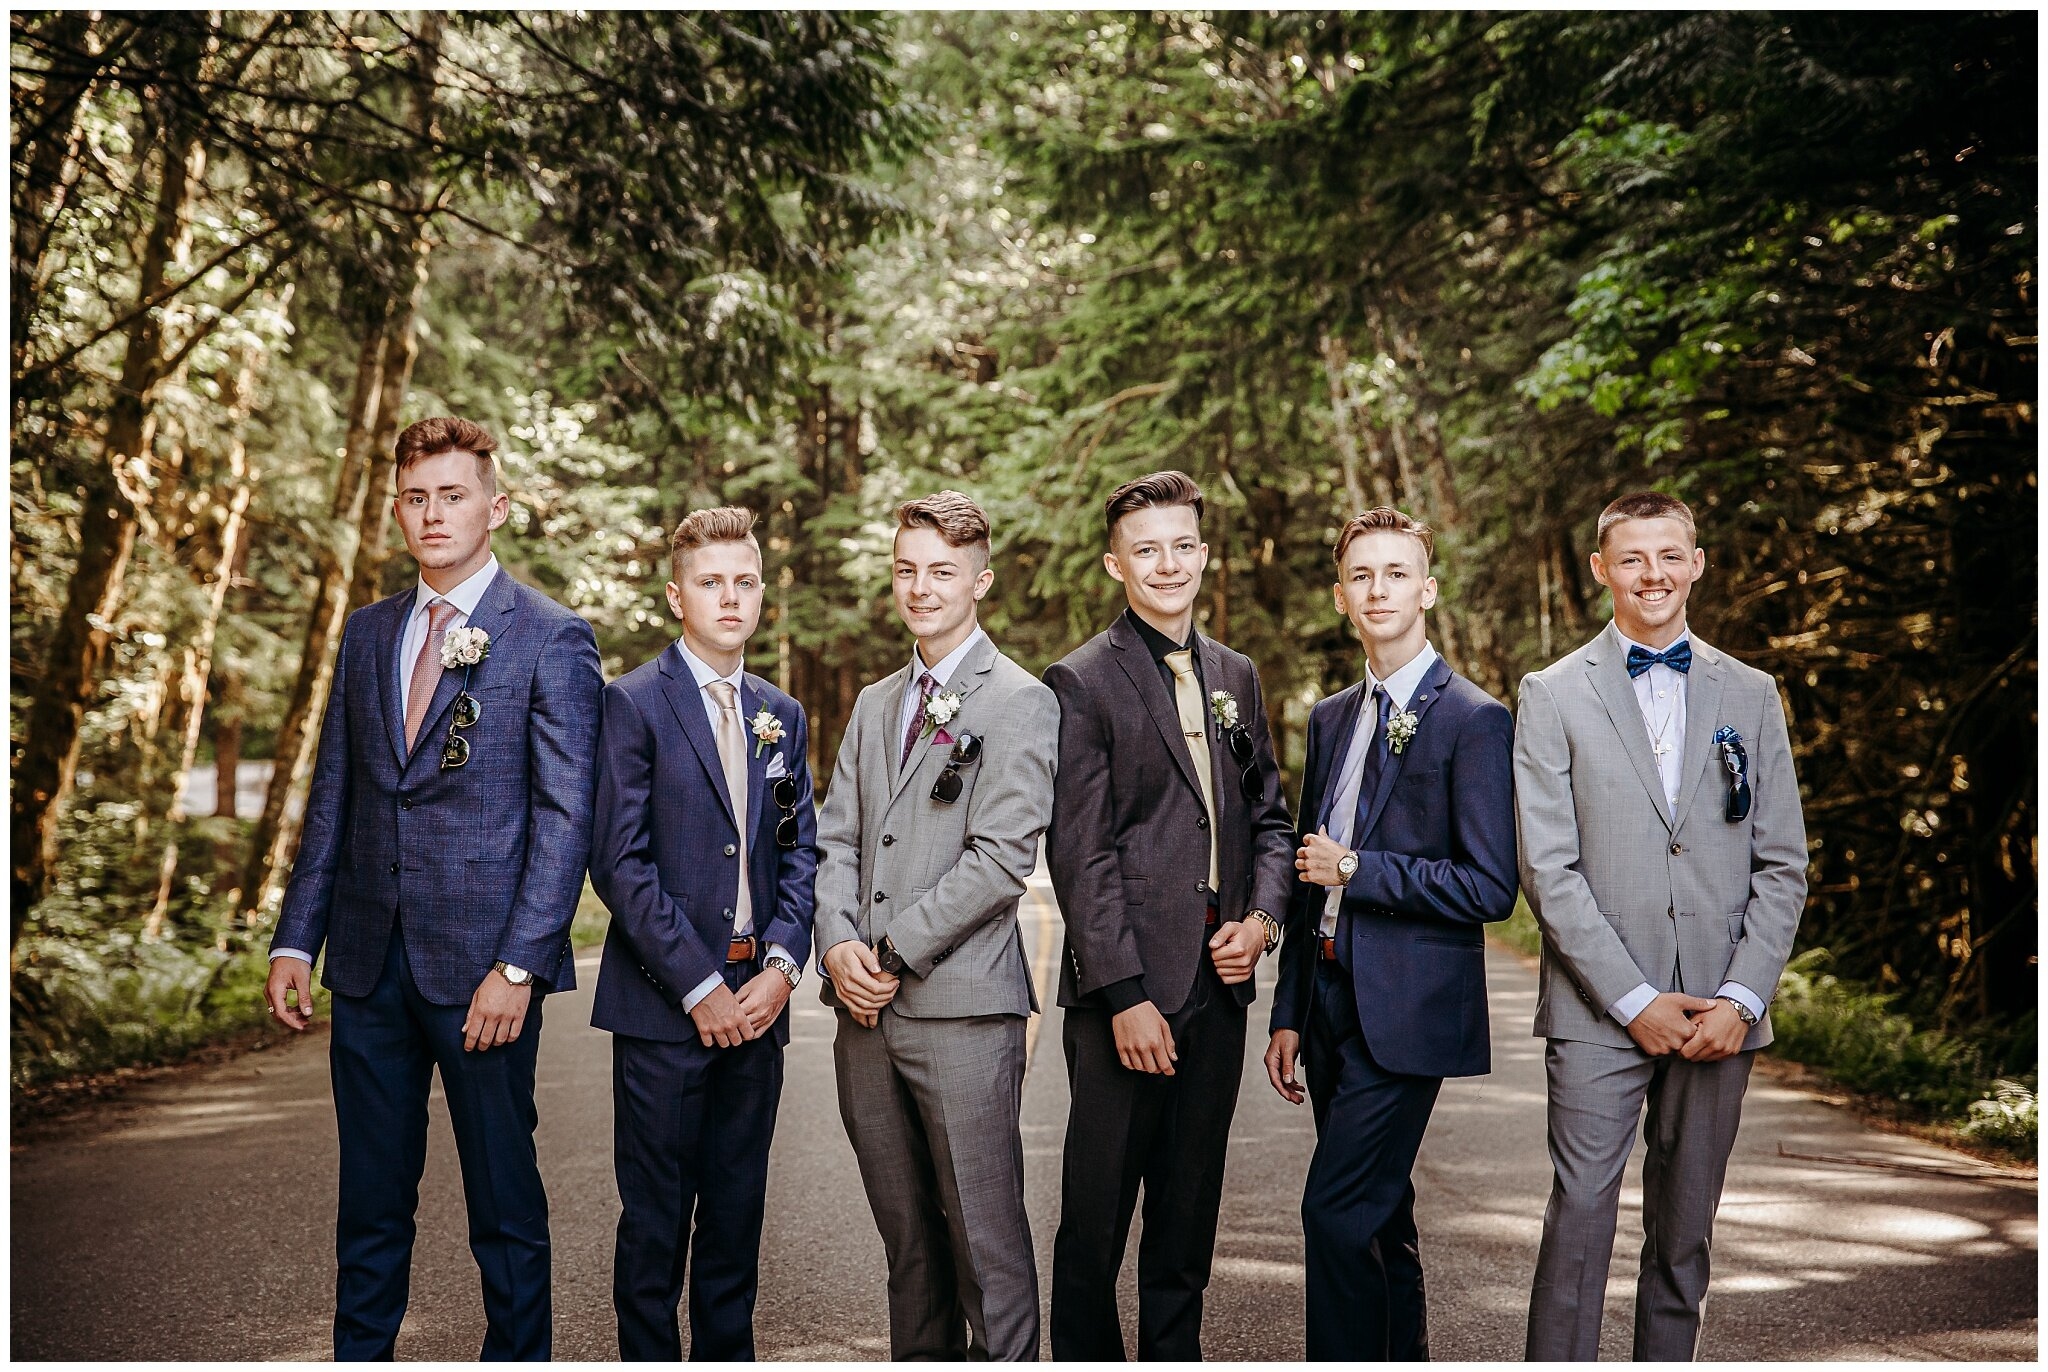 Abbotsford Highschool Prom Graduation Photographer 2019 Abbotsford fun bright_0021.jpg